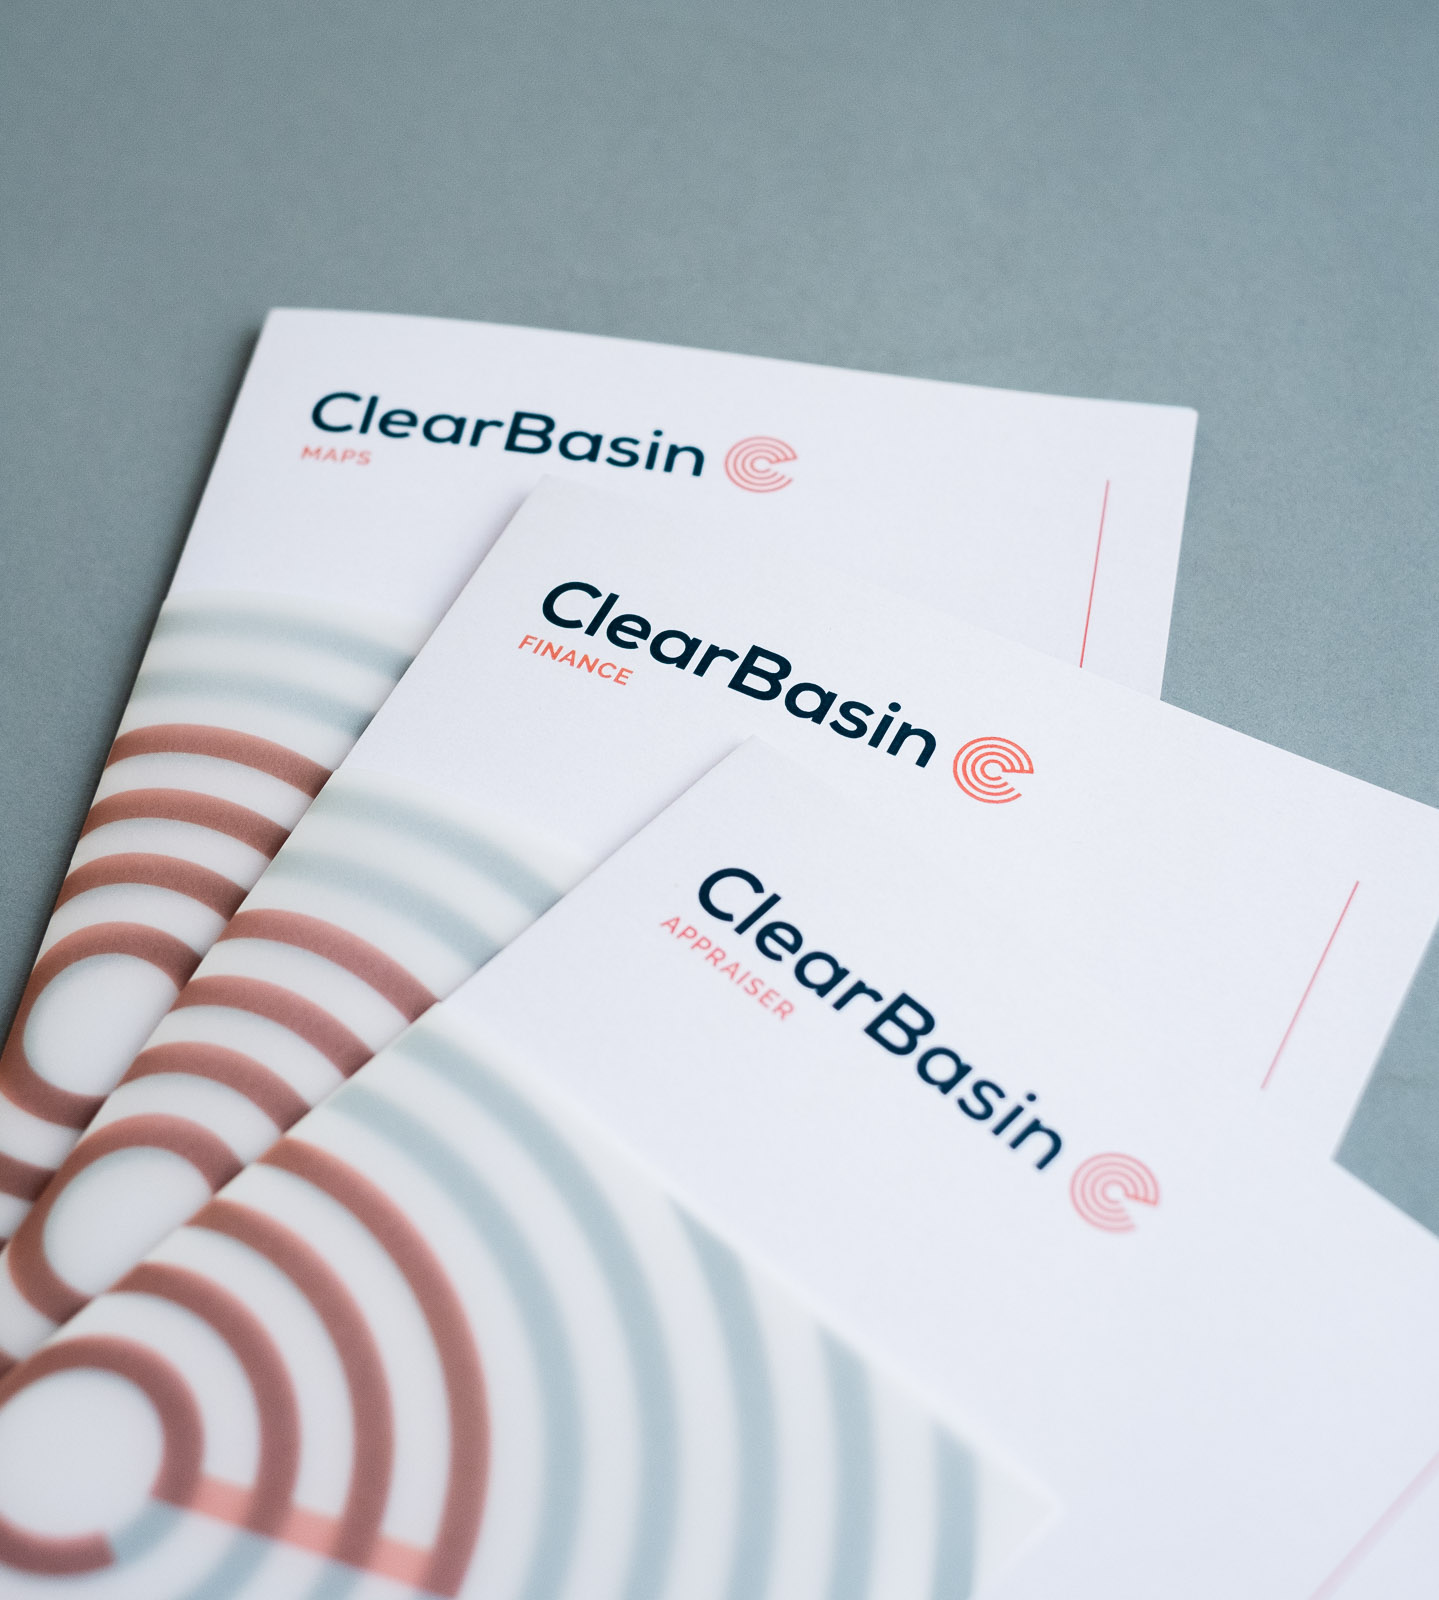 ClearBasin Brochures